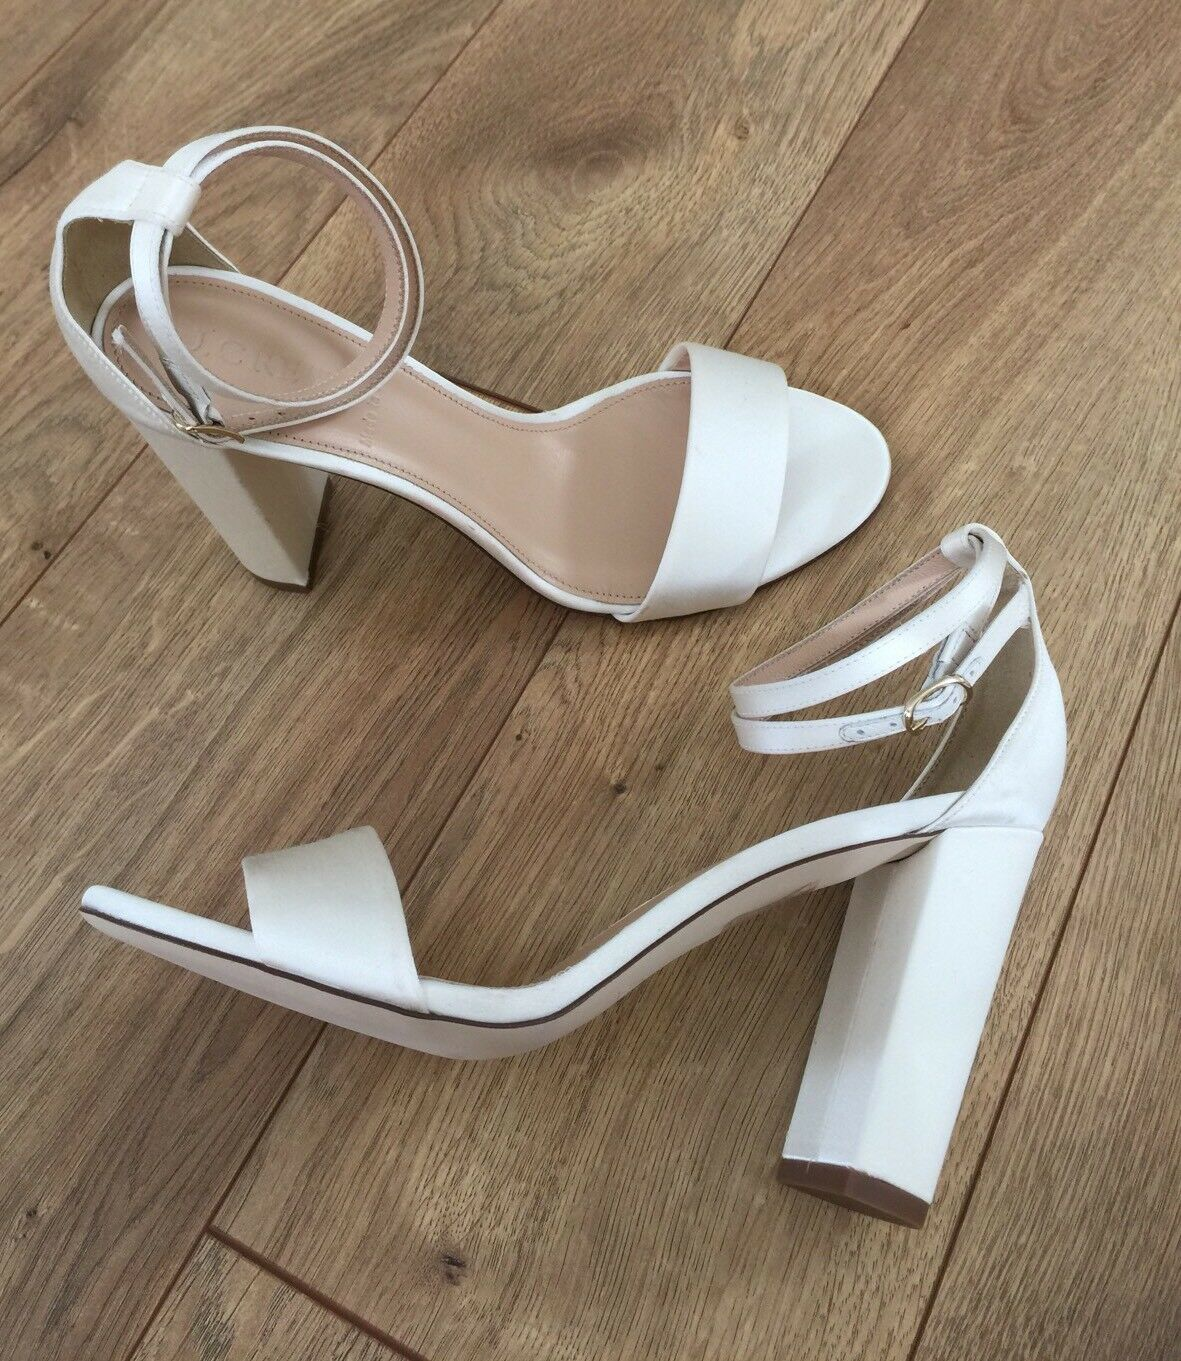 J.CREW SATIN SANDALS WITH ANKLE WRAPS G0888 SIZE 6.5 IVORY  248 NEW